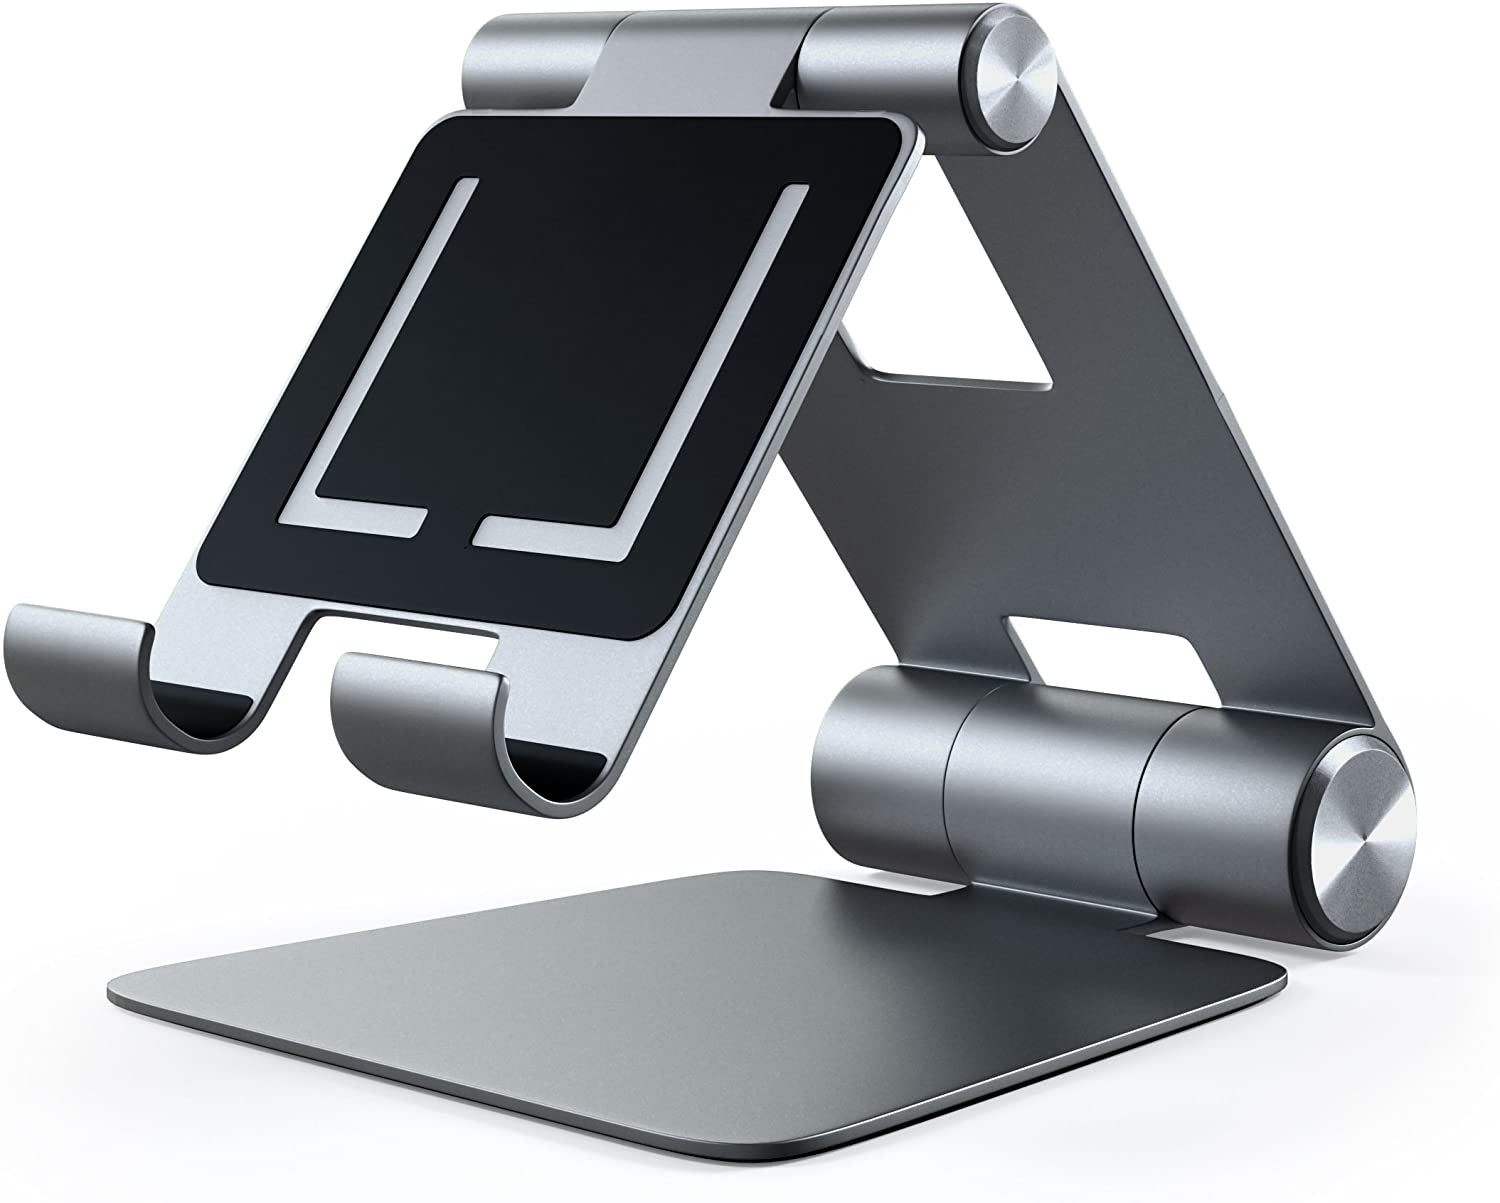 Satechi R1 Aluminum Multi-Angle Foldable Tablet Stand - Compatible with 2020/2018 iPad Pro, 2020 iPad Air, iPhone 12 Pro Max/12 Mini/12, 11 Pro Max/11 Pro, Xs Max/XS/XR/X, 8 Plus/8 (Space Gray), ST-R1M